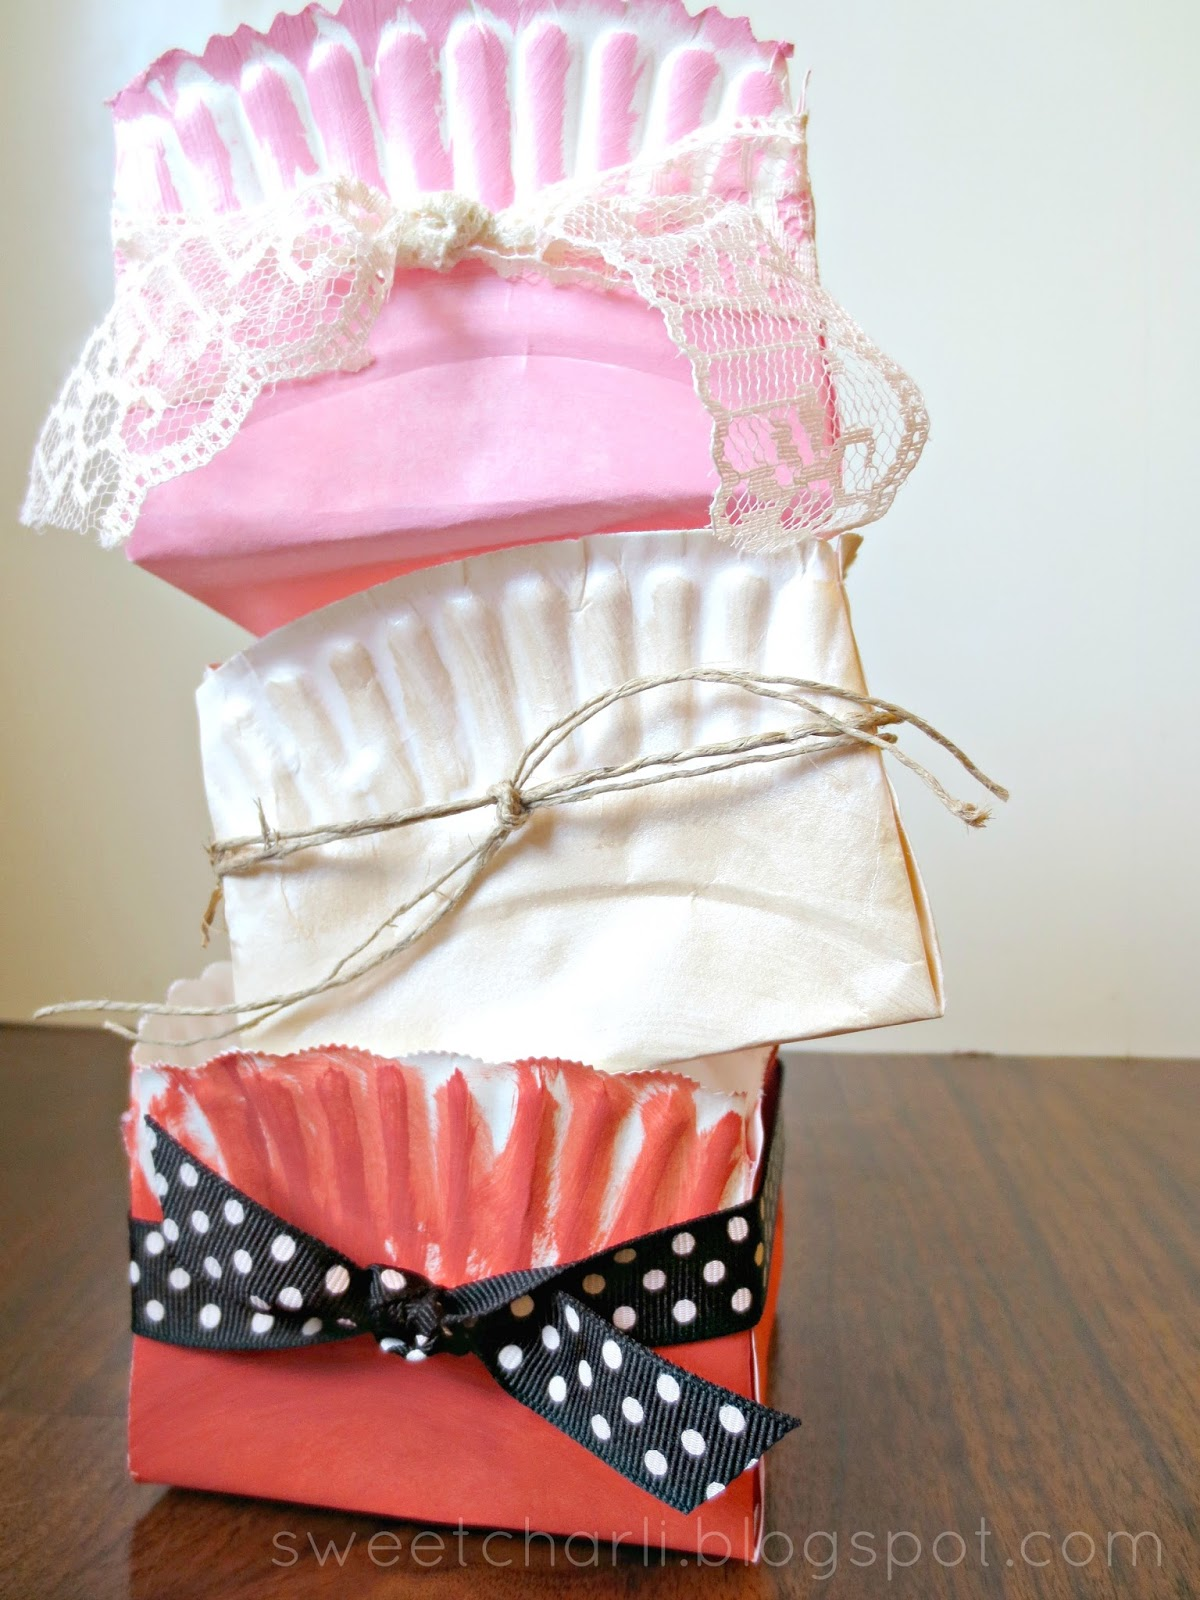 Diy Gift Box Using A Paper Plate Sweet Charli